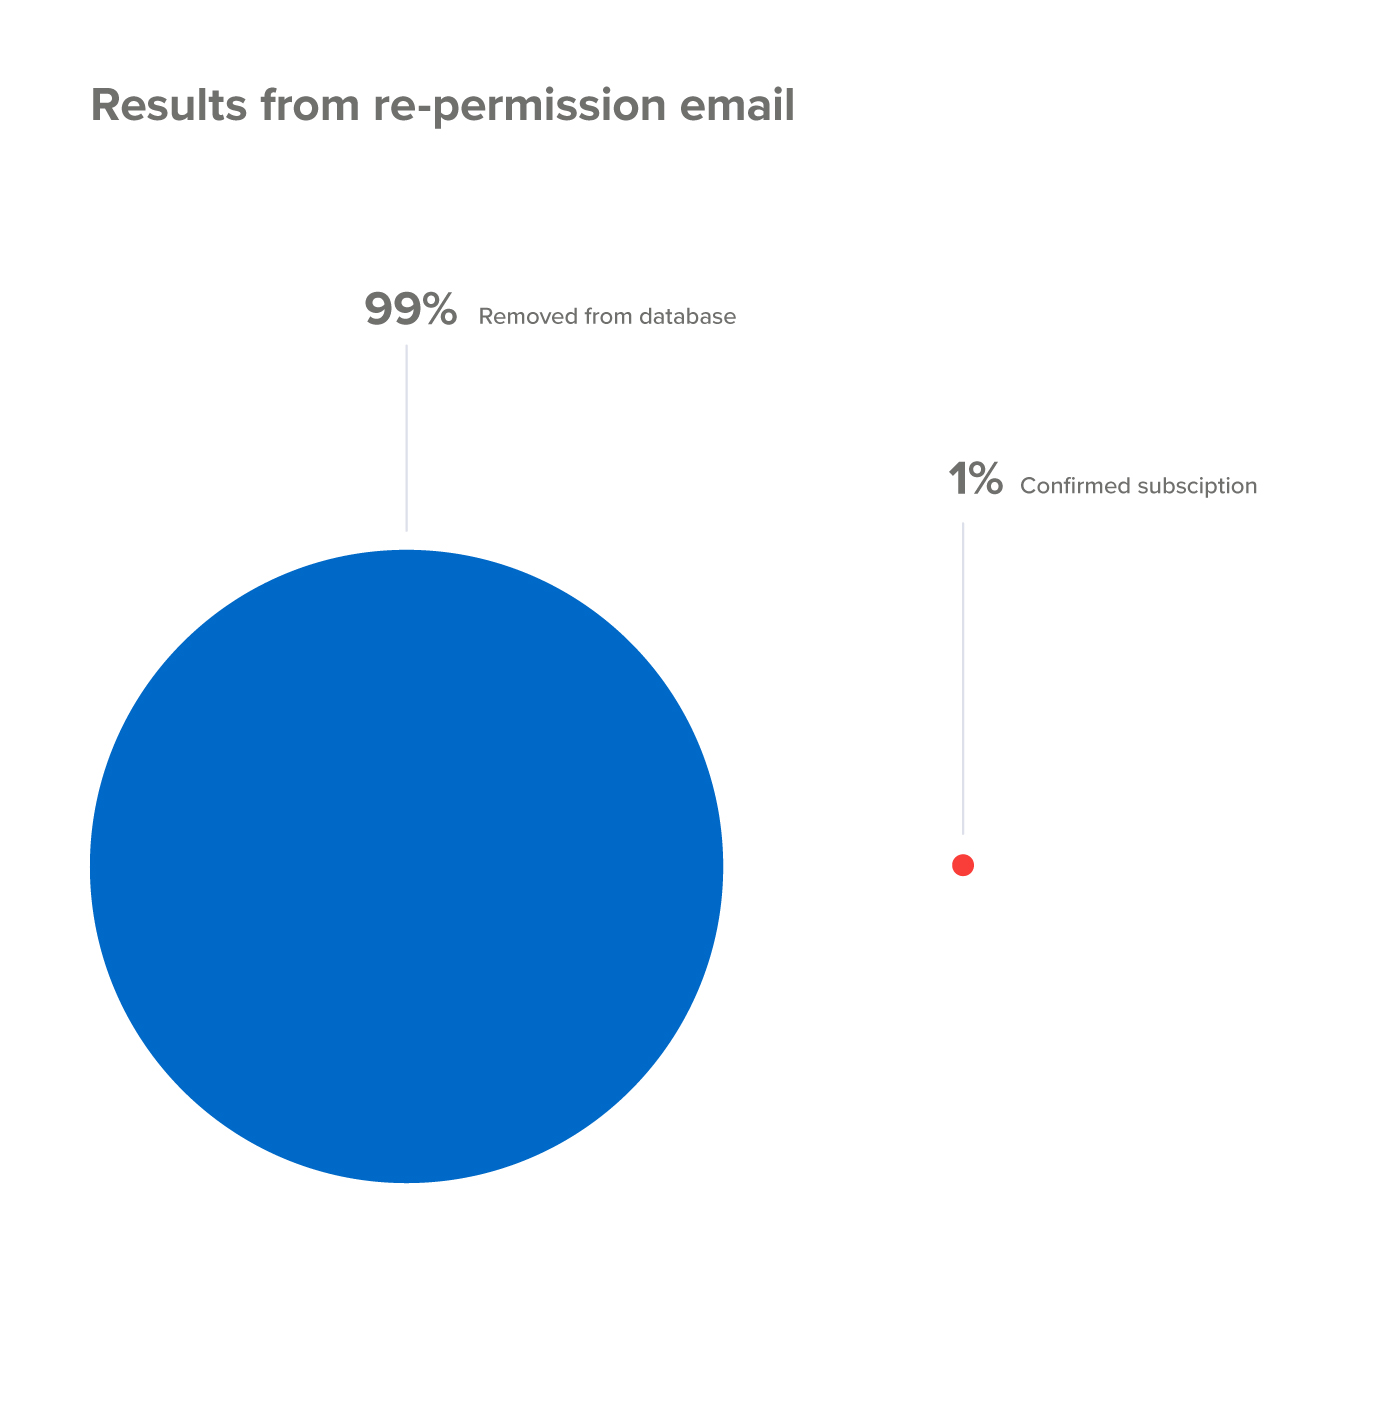 Results from email marketing re-permission campaign